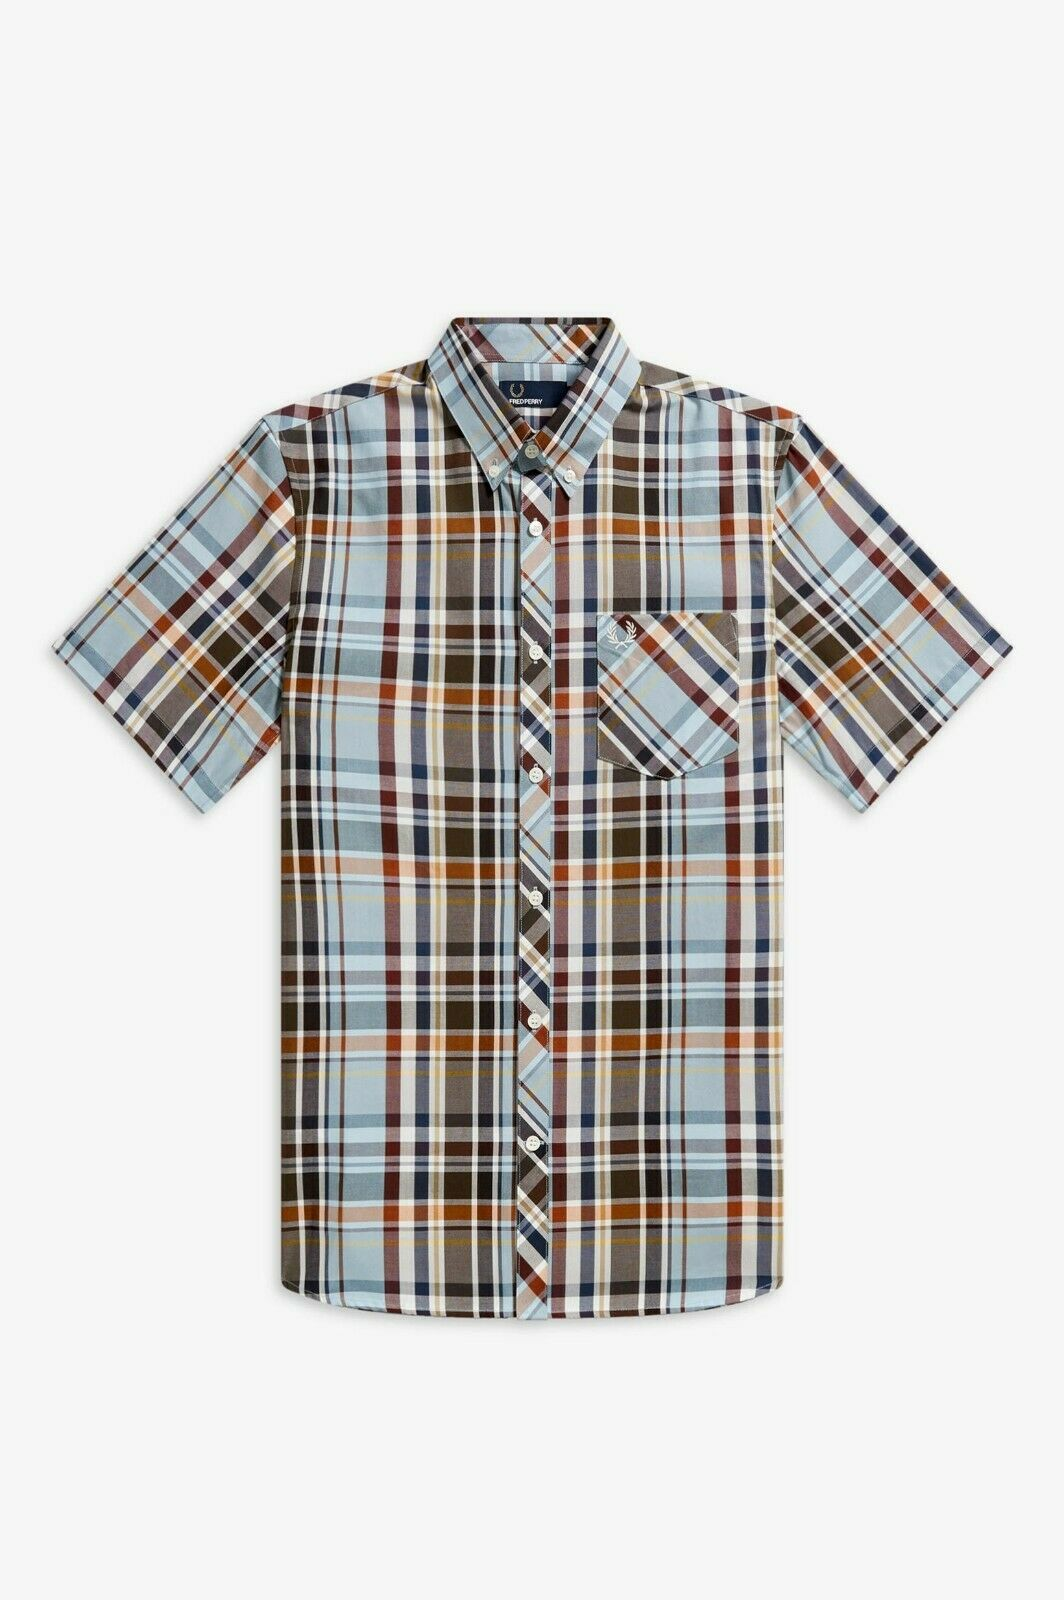 Frot Perry Sky Madras Check Shirt - M5561 444